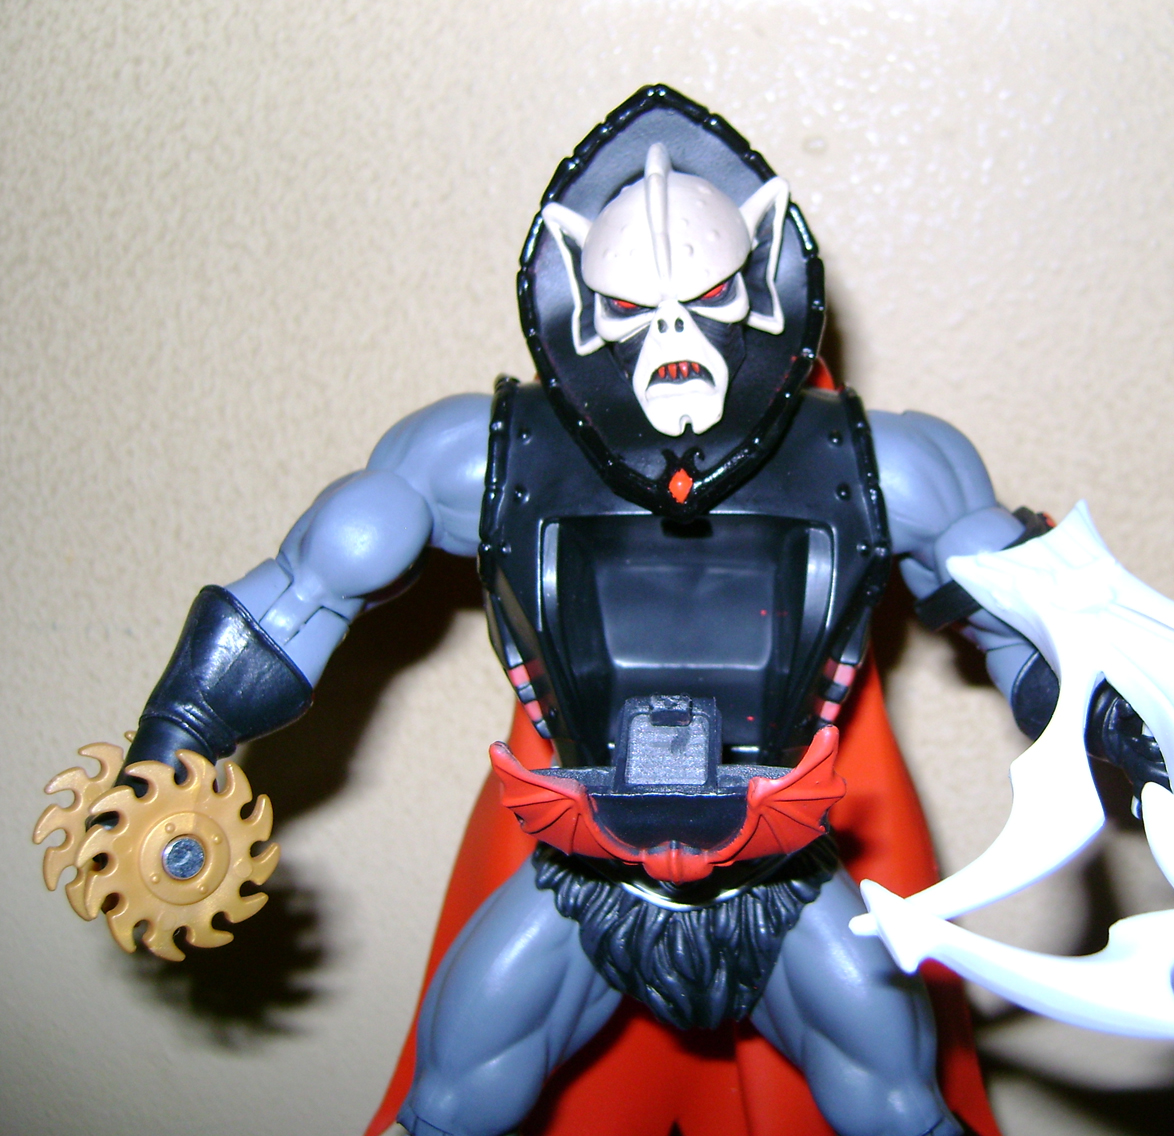 Aug 11 MOTUC 2015 And 200X Special Subscription  Aug: Buzz Saw Hordak, Evil Seed and Heads of Eternia!